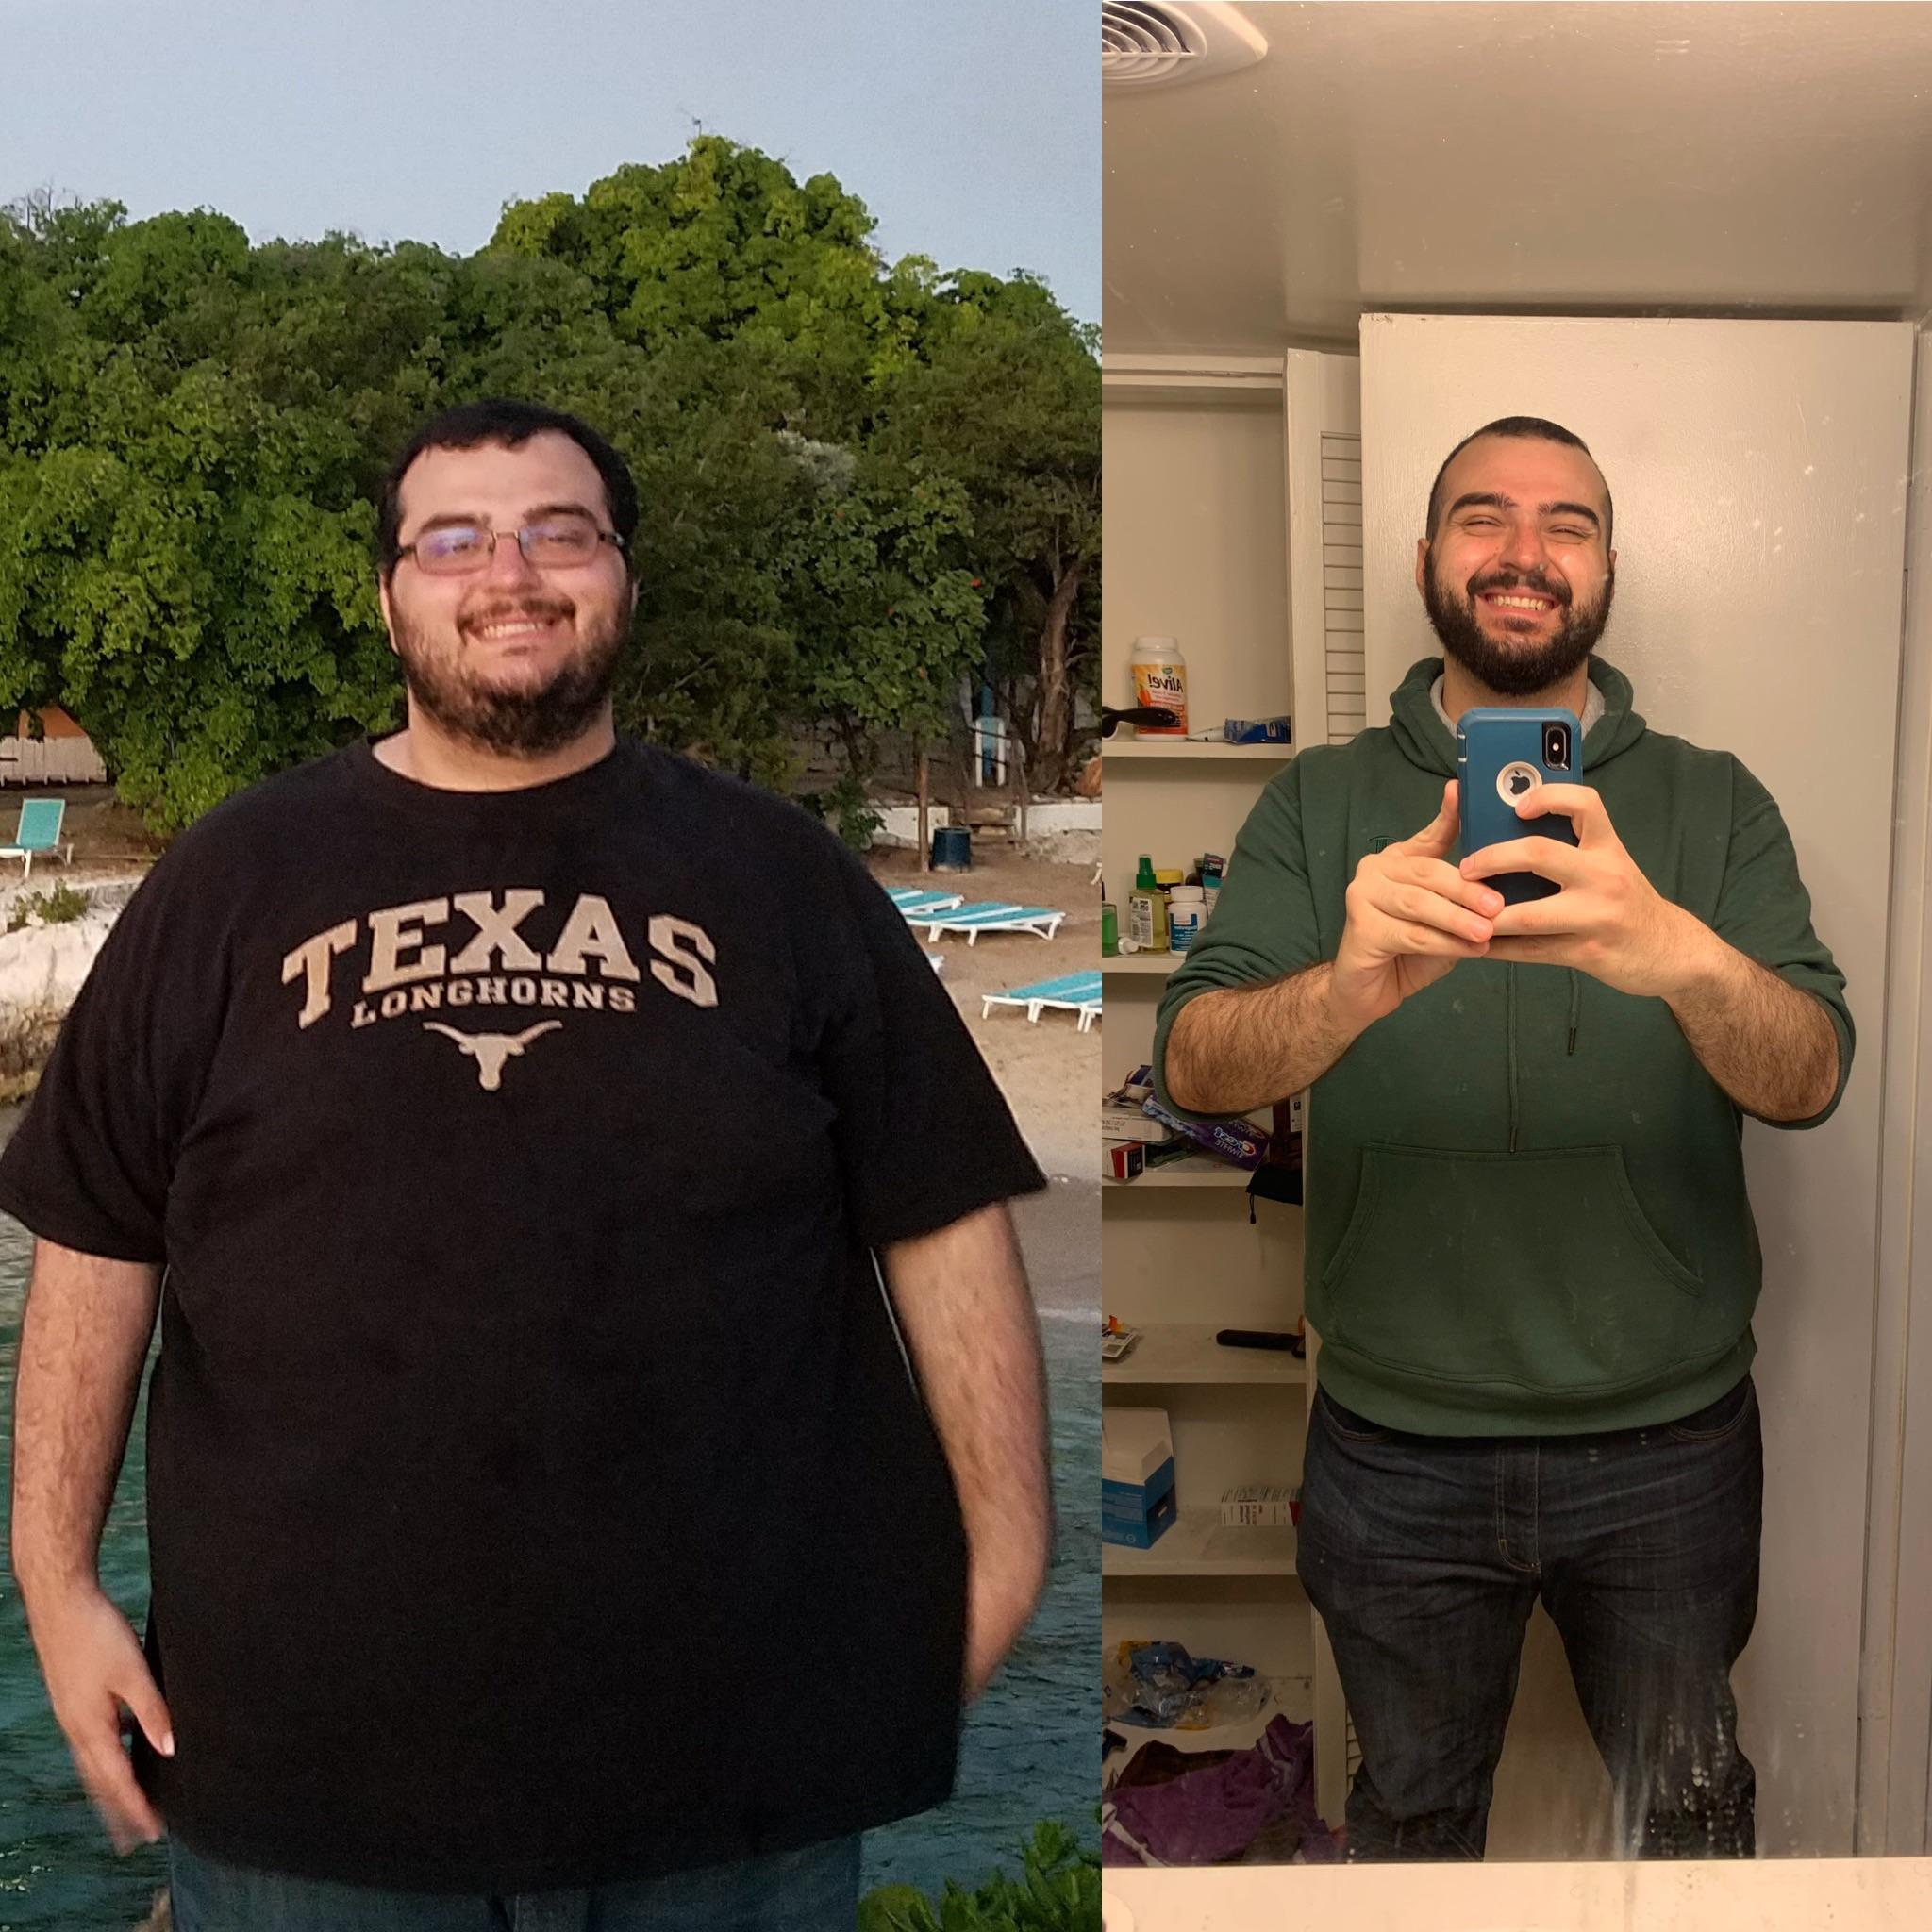 6 foot 4 Male 200 lbs Fat Loss Before and After 470 lbs to 270 lbs